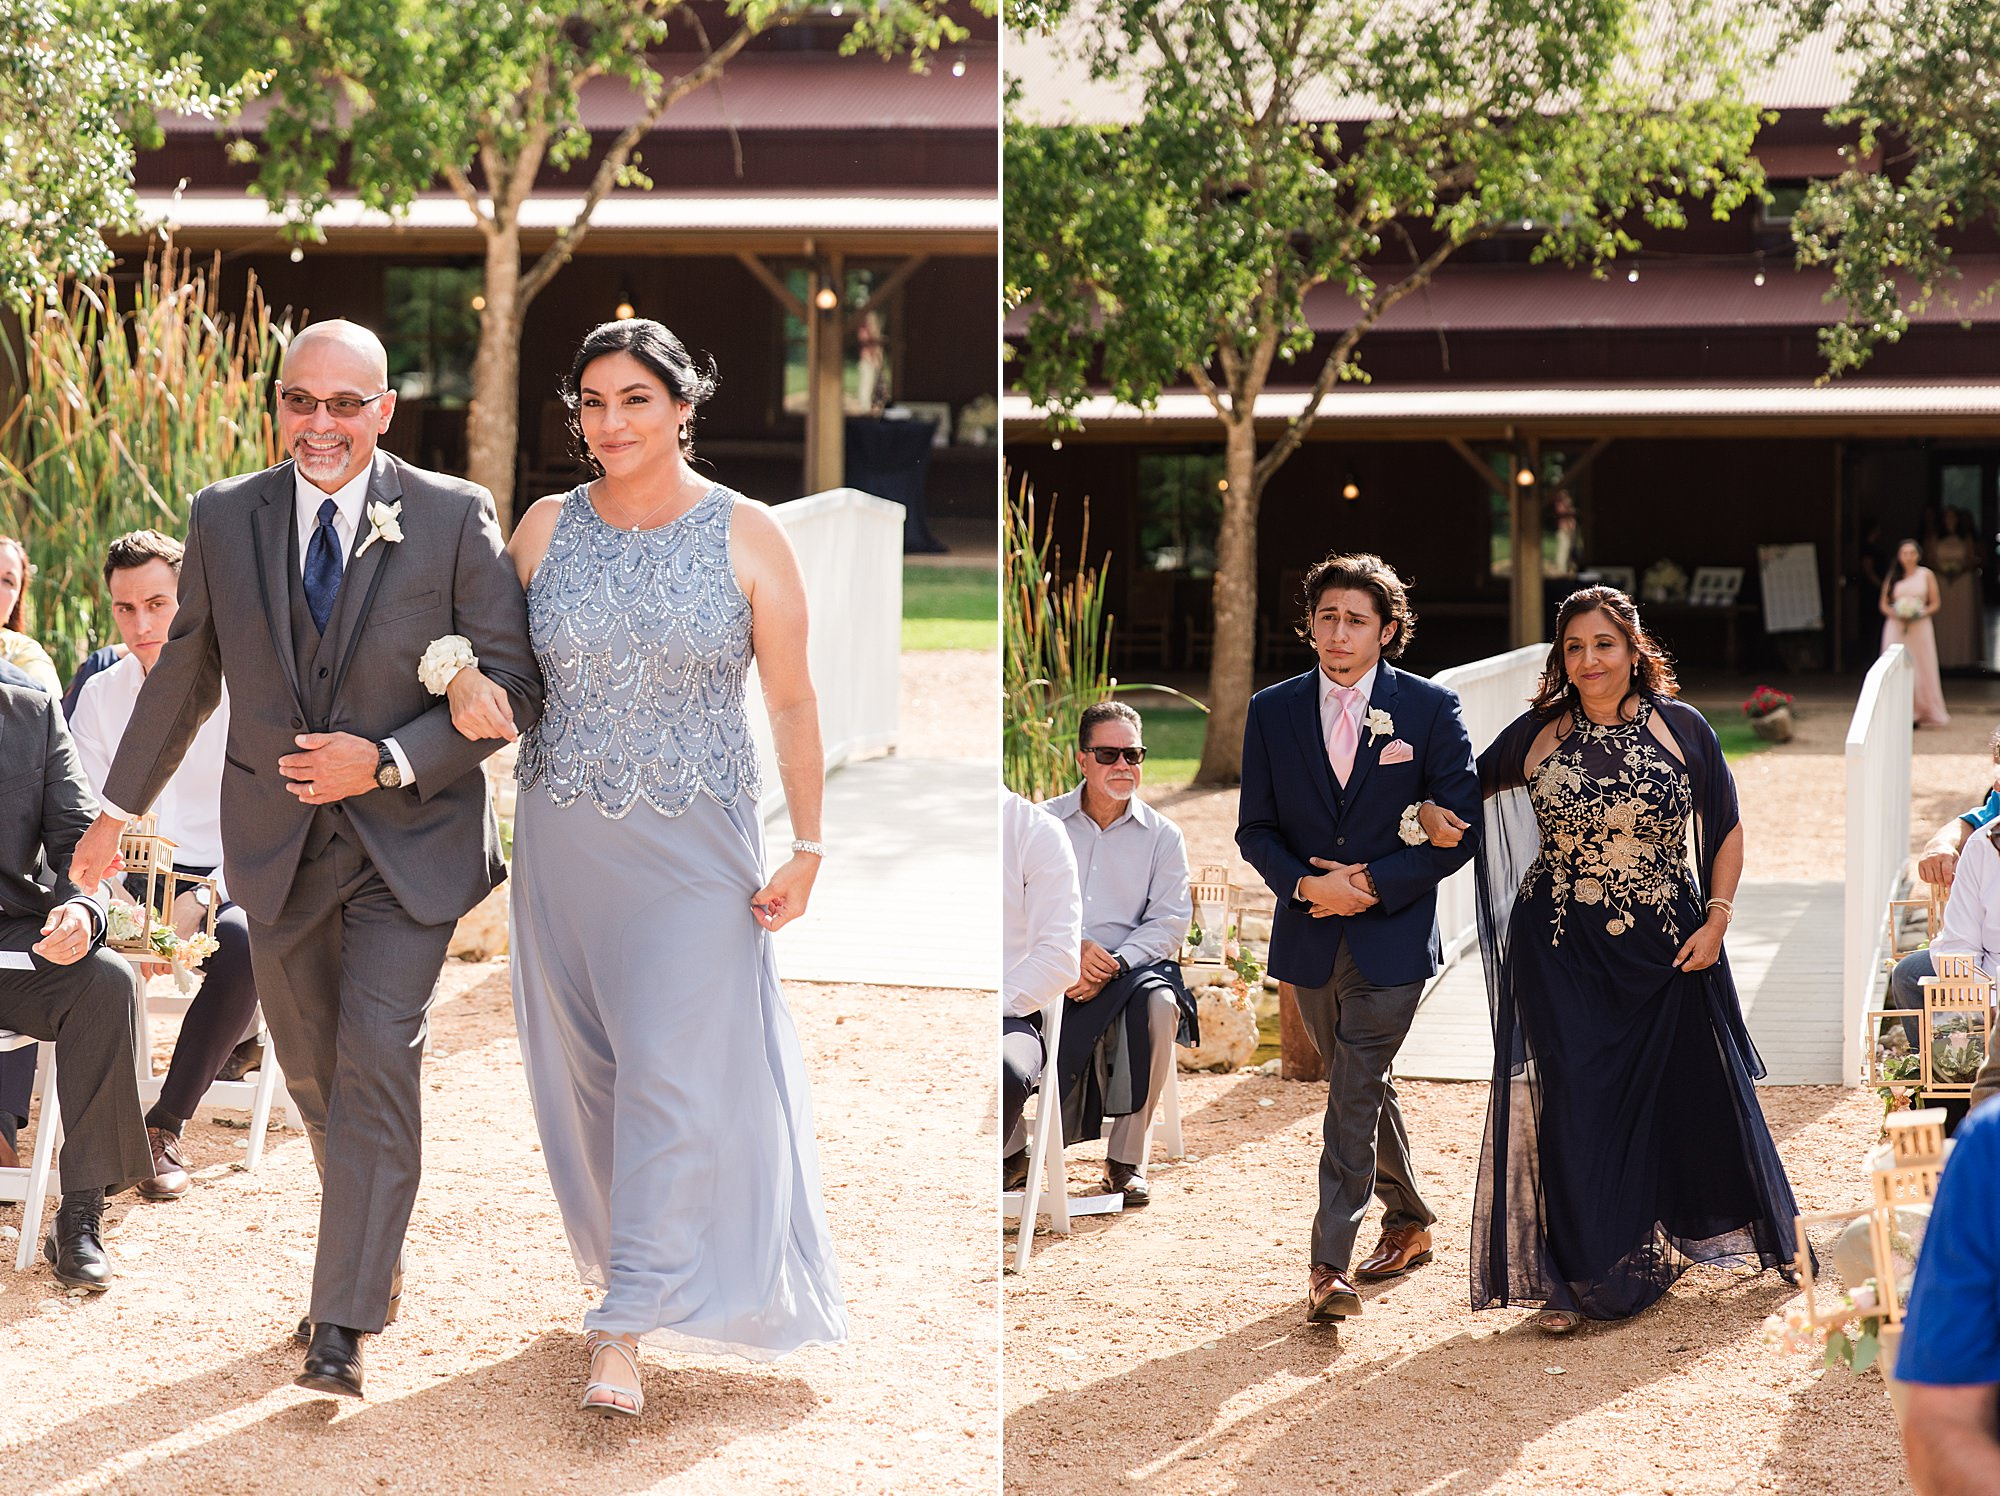 Wedding-Photographer-Bulverde-Texas-Western-Sky-Event-Venue-Carly-Barton-Photography_0036.jpg